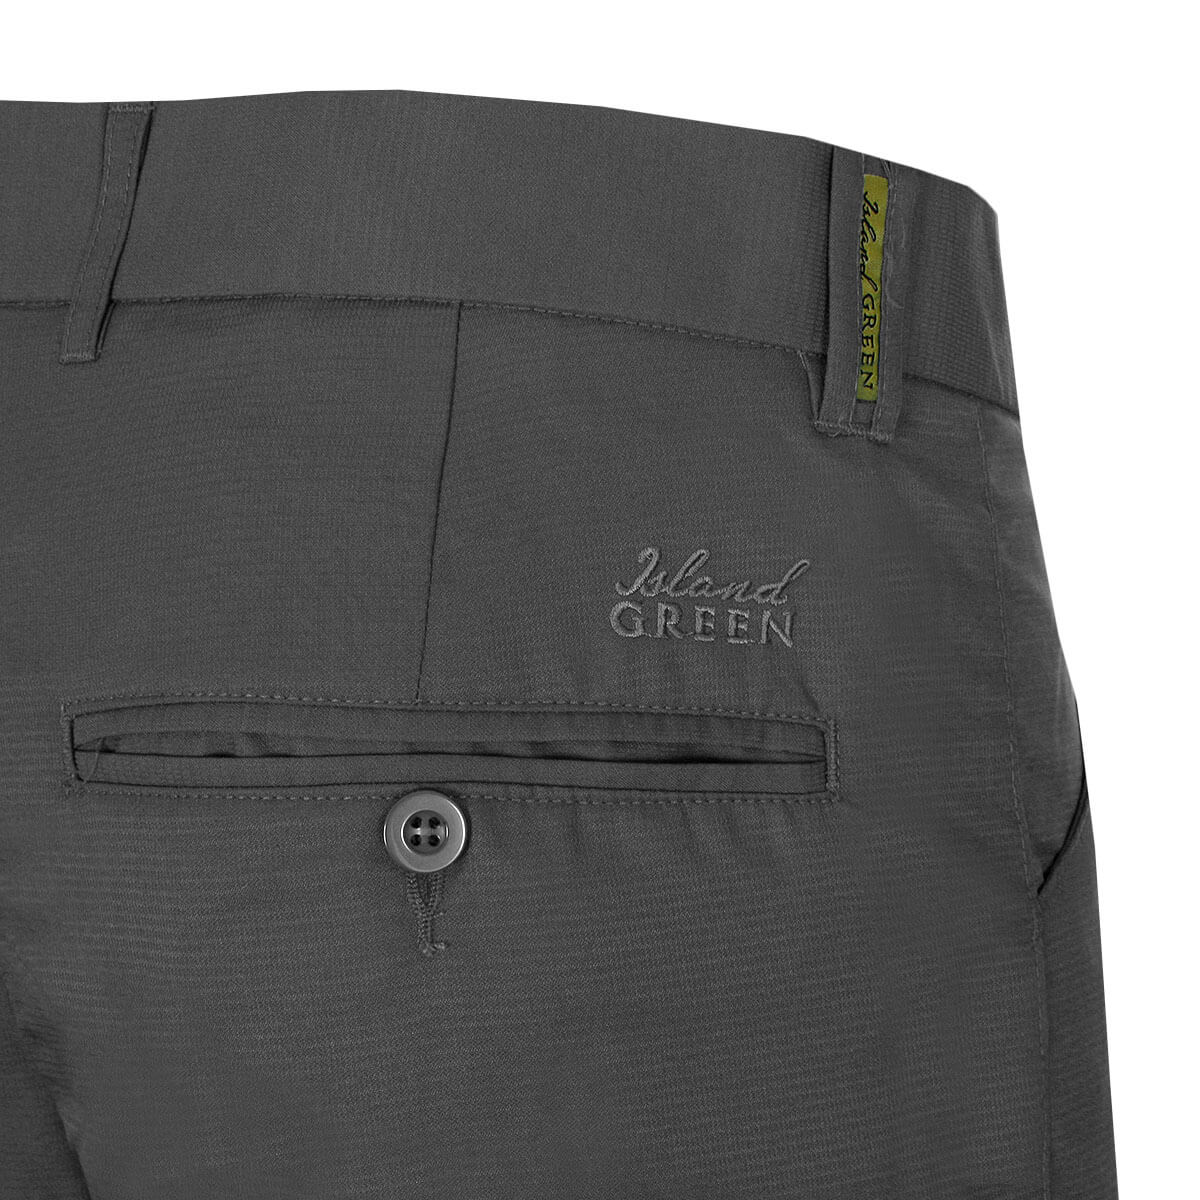 Island-Green-Breathable-Tapered-Slim-Fit-Mens-Golf-Trousers-47-OFF-RRP thumbnail 8